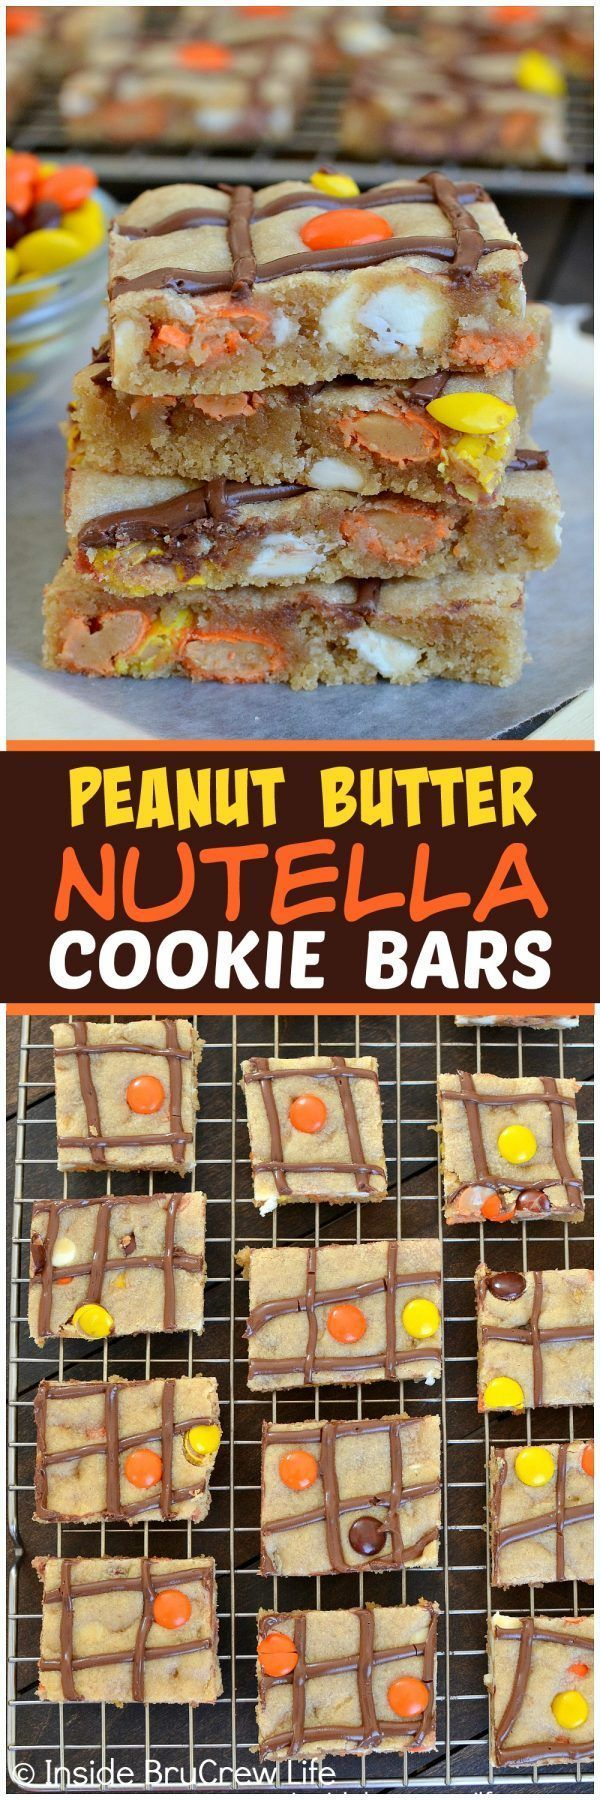 Peanut Butter Nutella Cookie Bars - these easy bar cookies are loaded with white chocolate, Reese's pieces, and Nutella drizzles. Great recipe when you want cookies in a hurry!